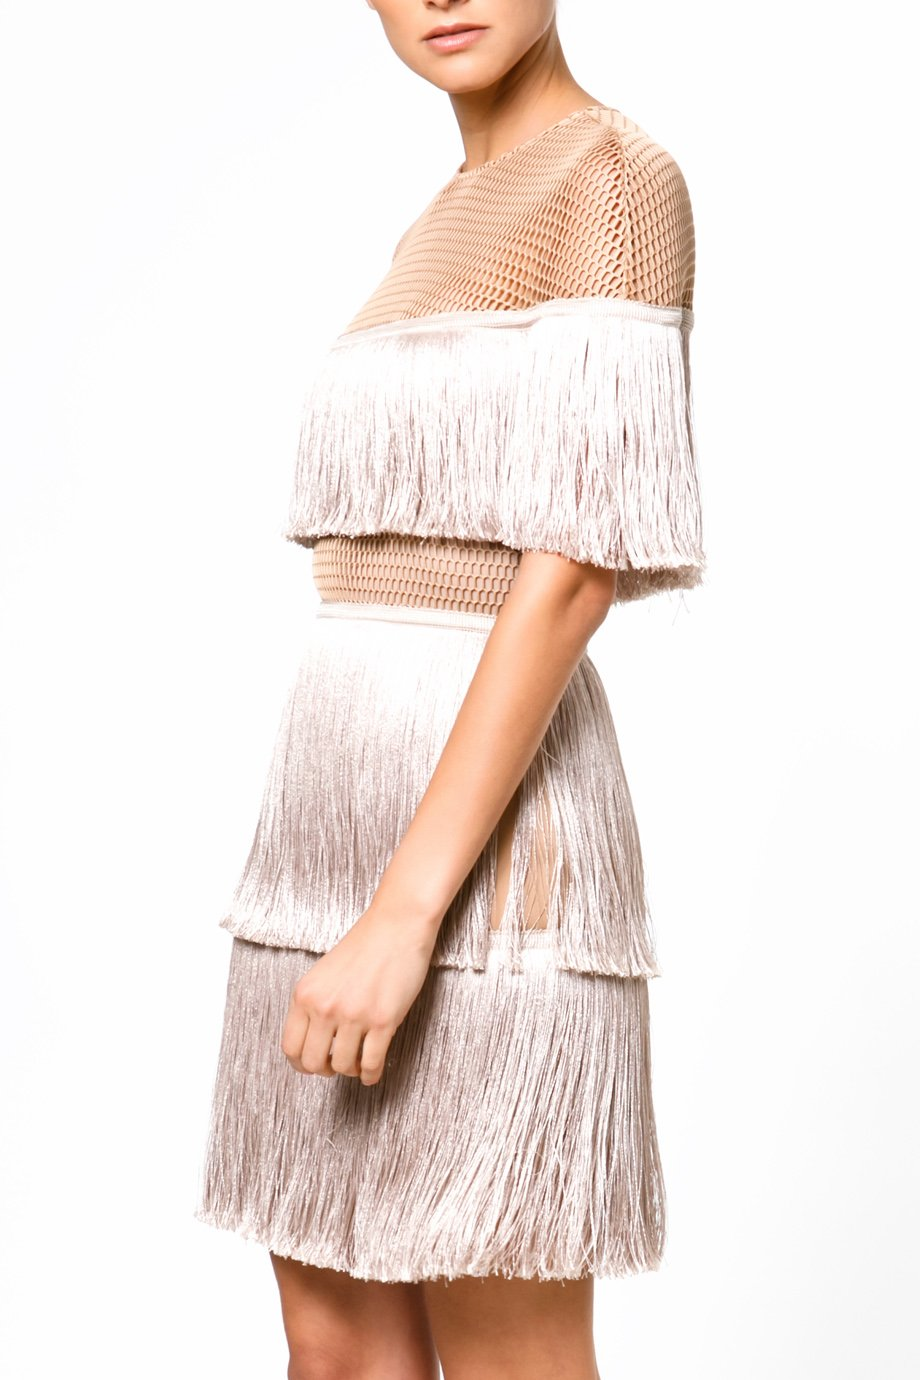 Vatanika Metallic Ivory  Short Sleeve Fringe Cocktail Dress